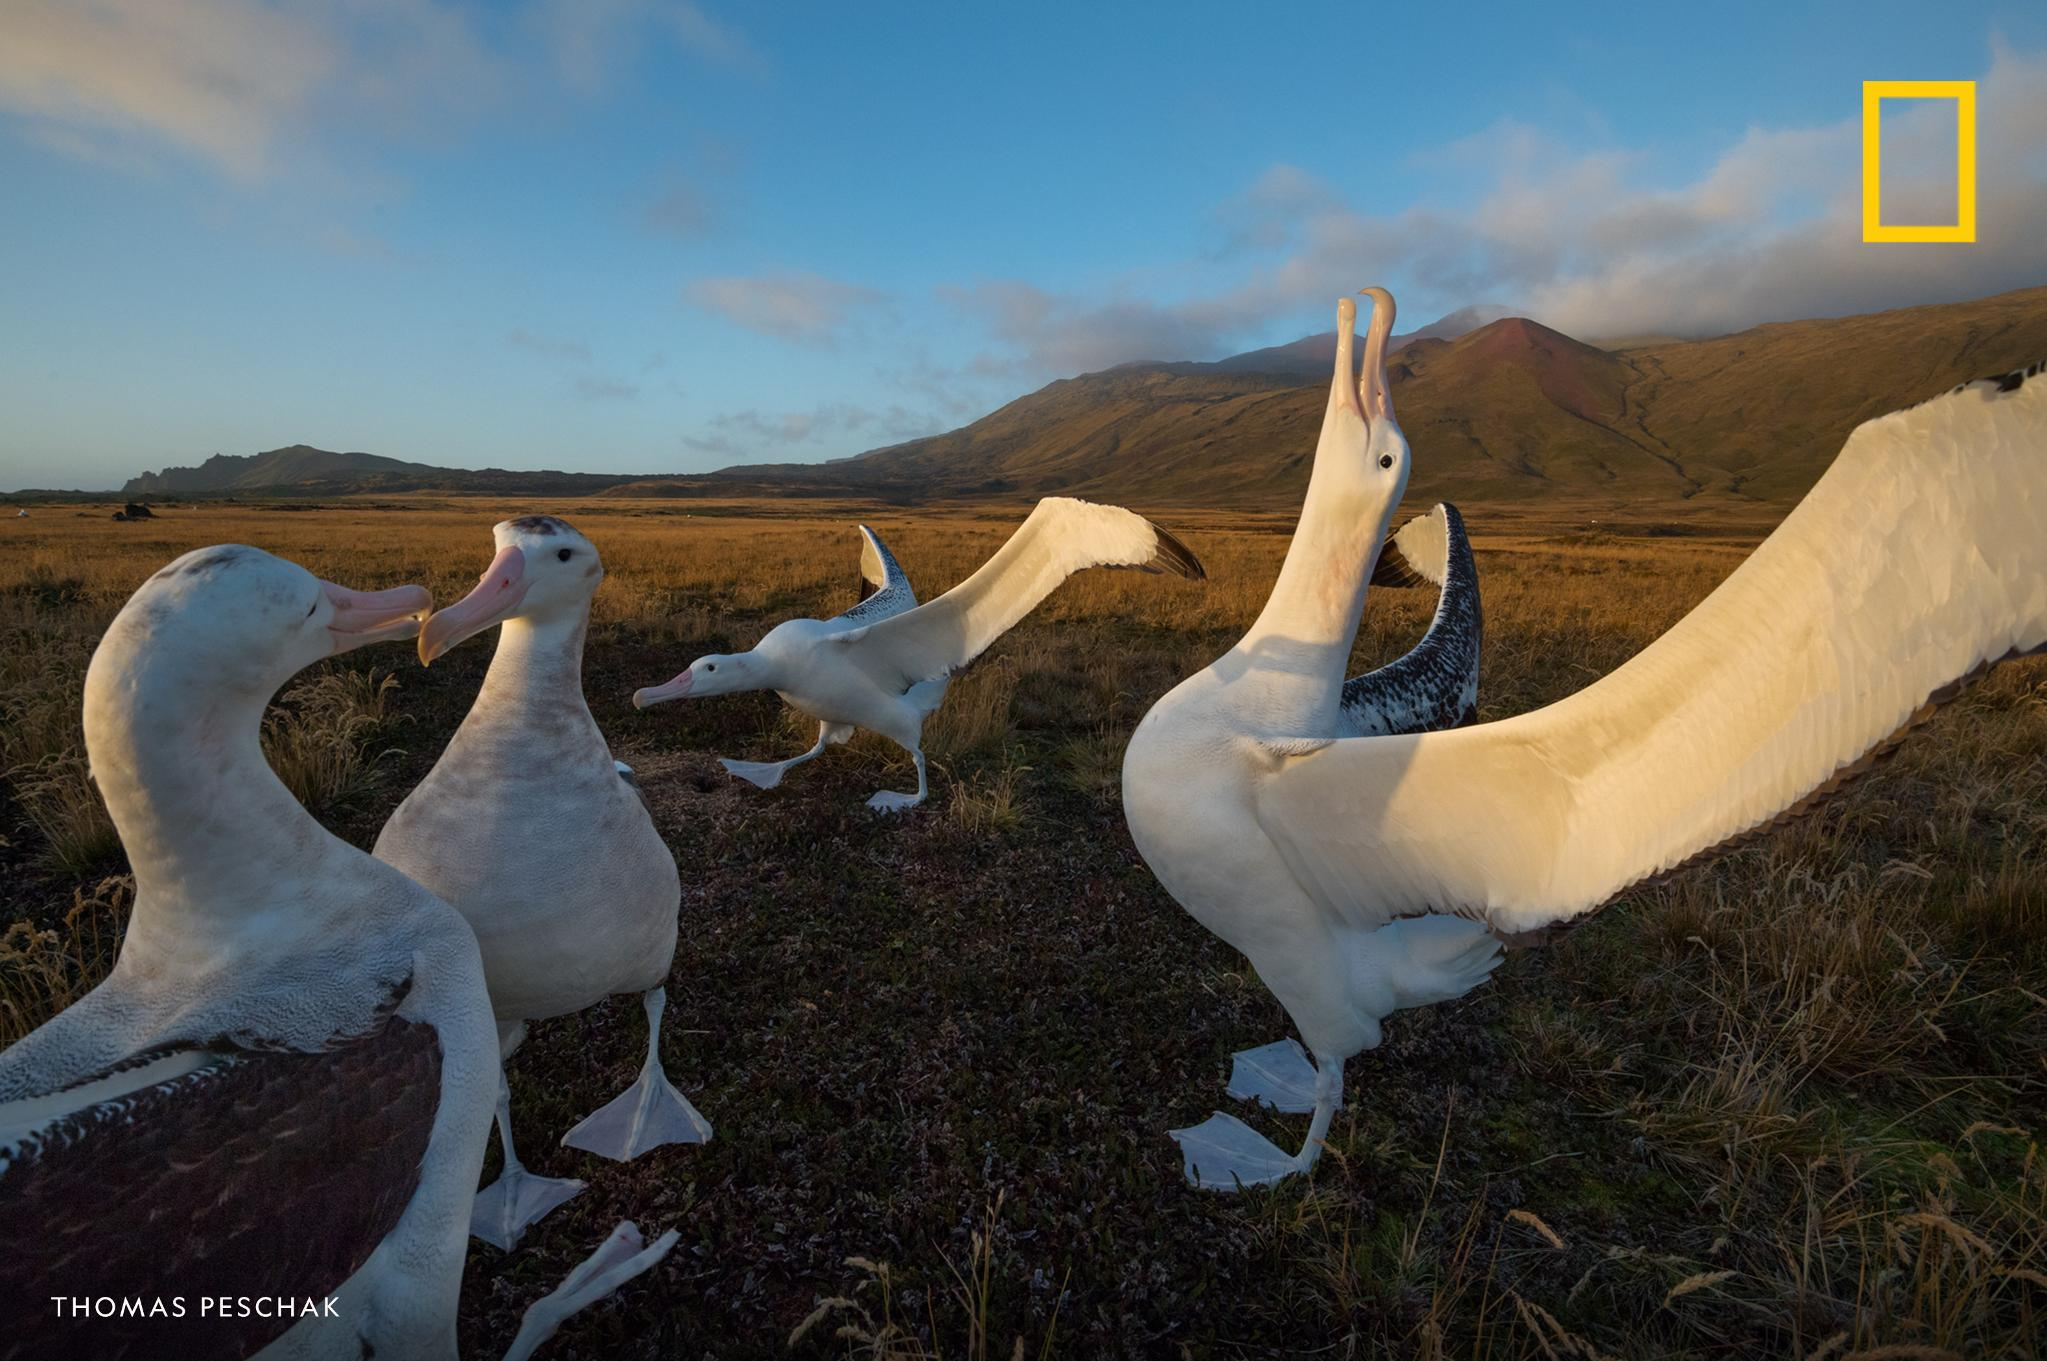 "Tiny mice are feasting on the heads of live albatross chicks on a sub-antarctic island. Why? Find out in the latest episode of ""Overheard."" https://on.natgeo.com/32kI2hd"